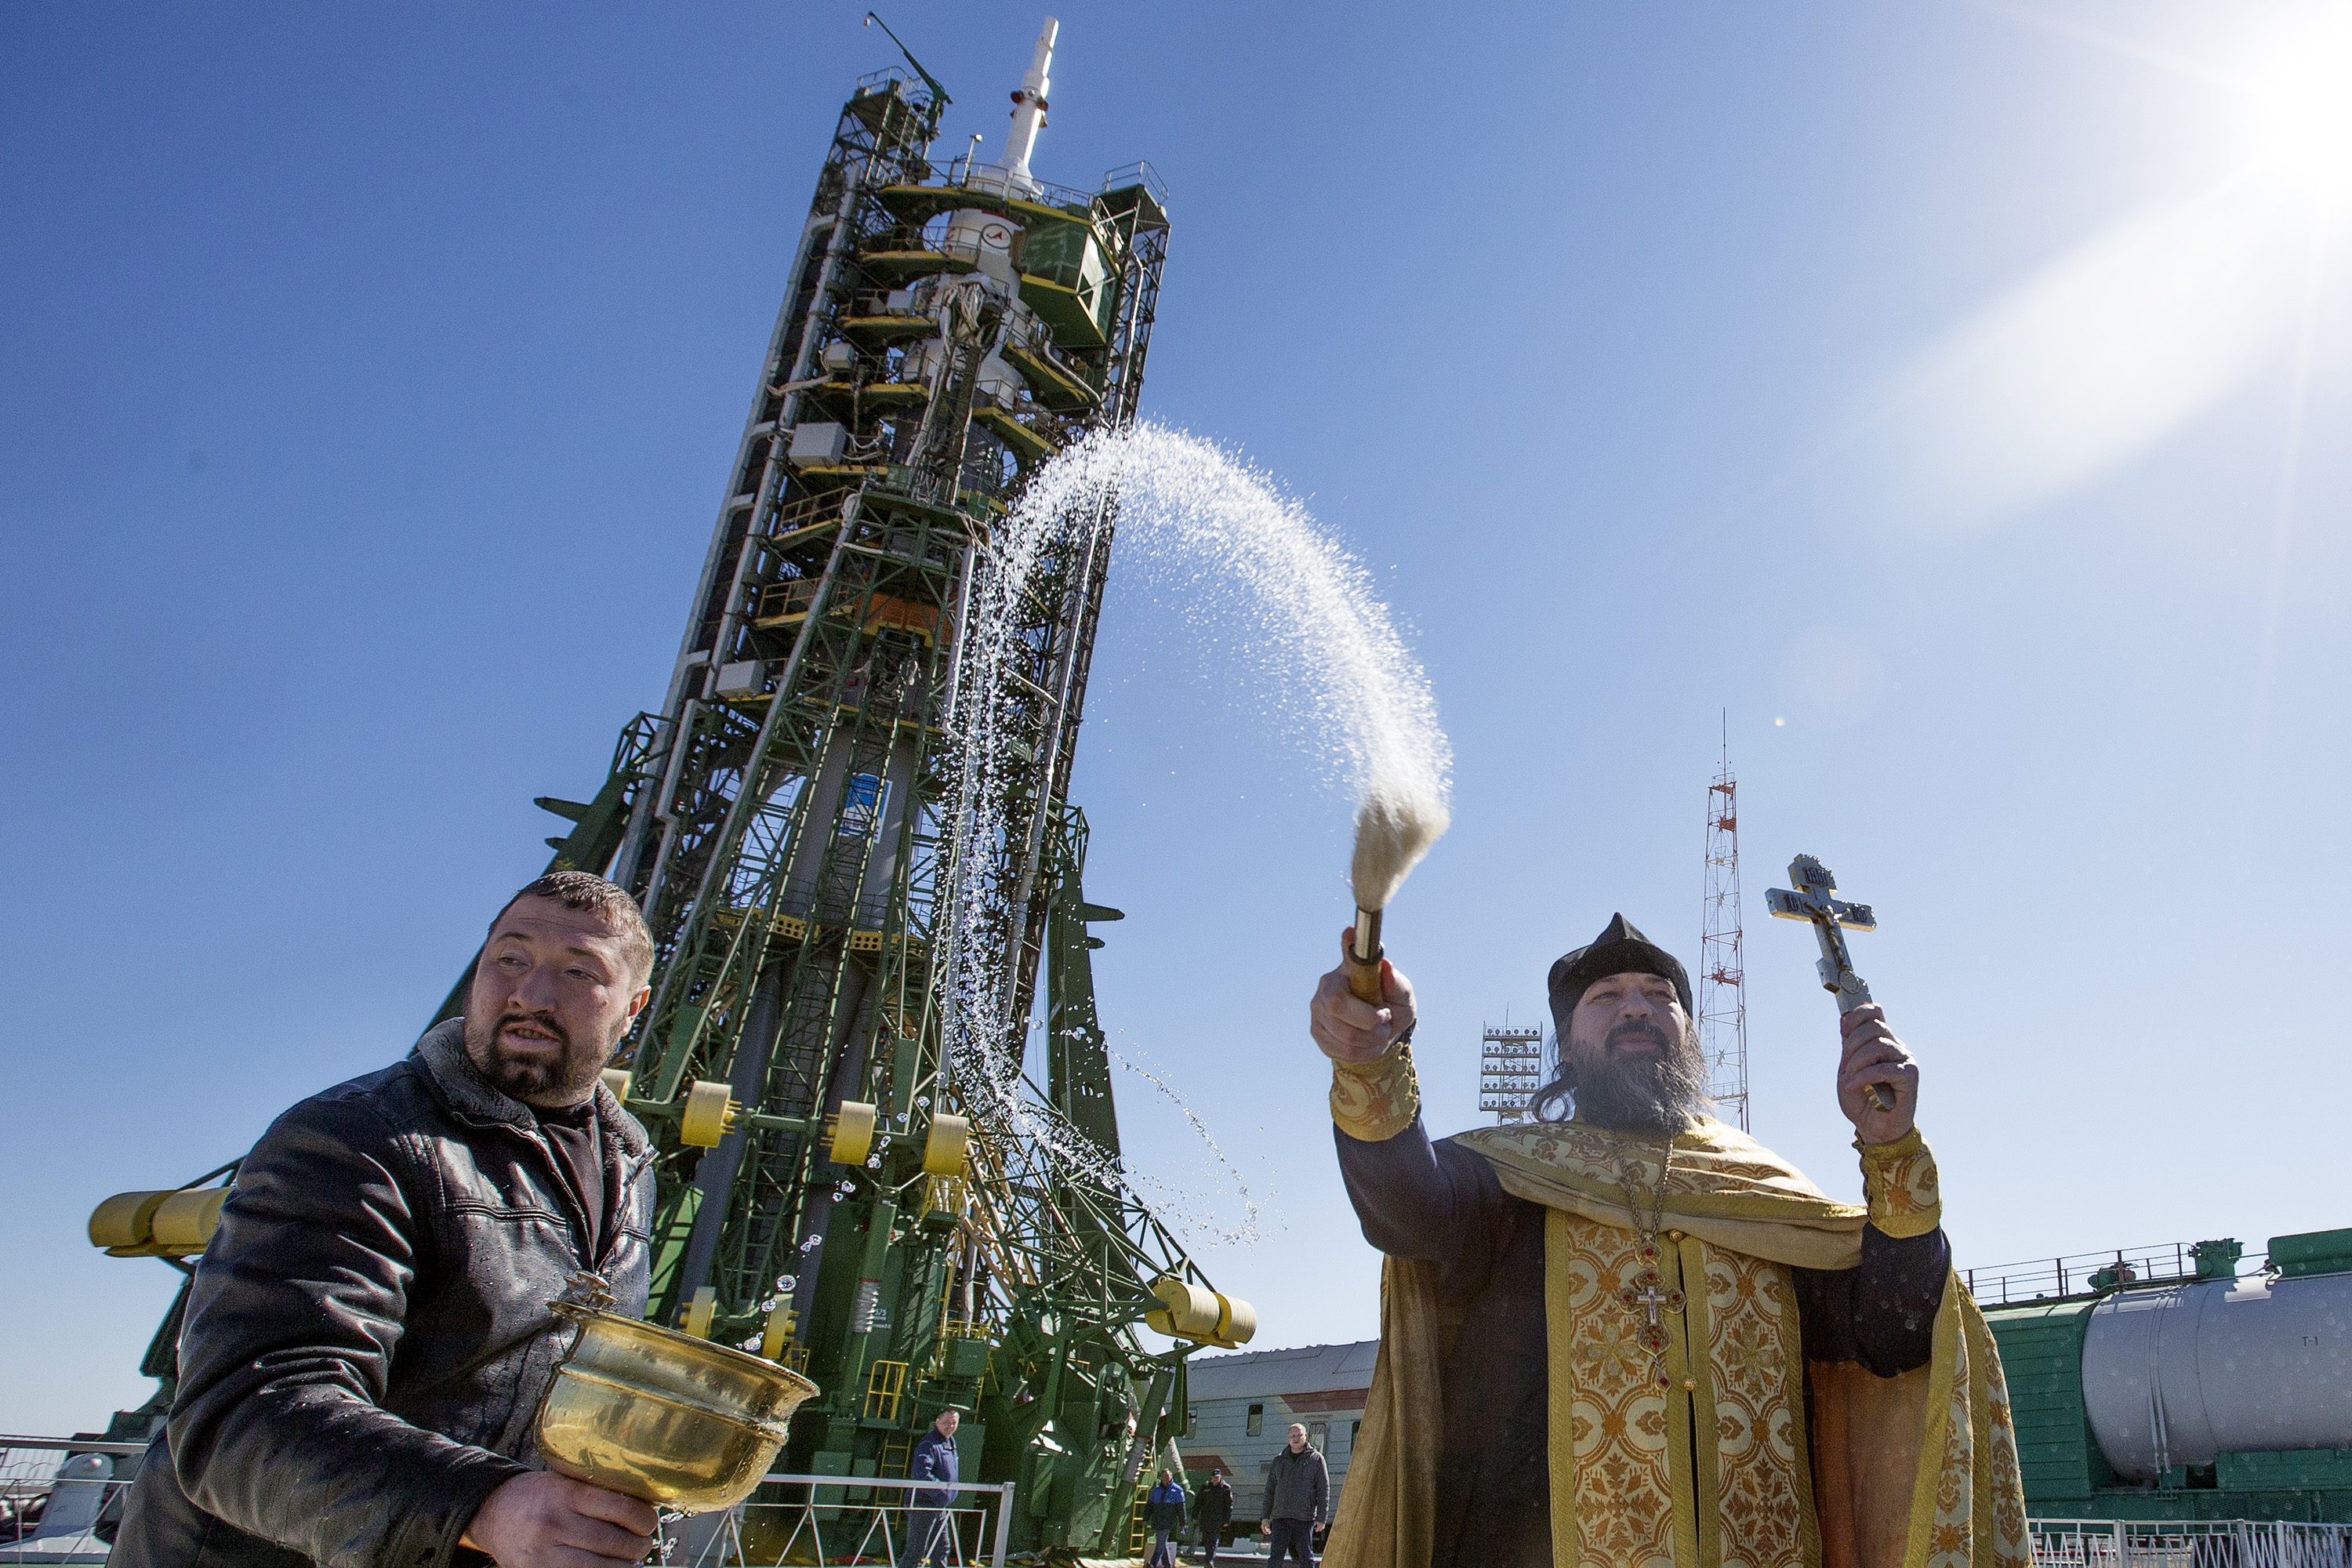 A Russian orthodox priest blesses the Soyuz Rocket, staff and members of the media two days before its launch.  The Rocket will carry American Astronaut Scott Kelly and Russian Cosmonauts Mikhail Kornienko and Gennady Padalka to the International Space Station.